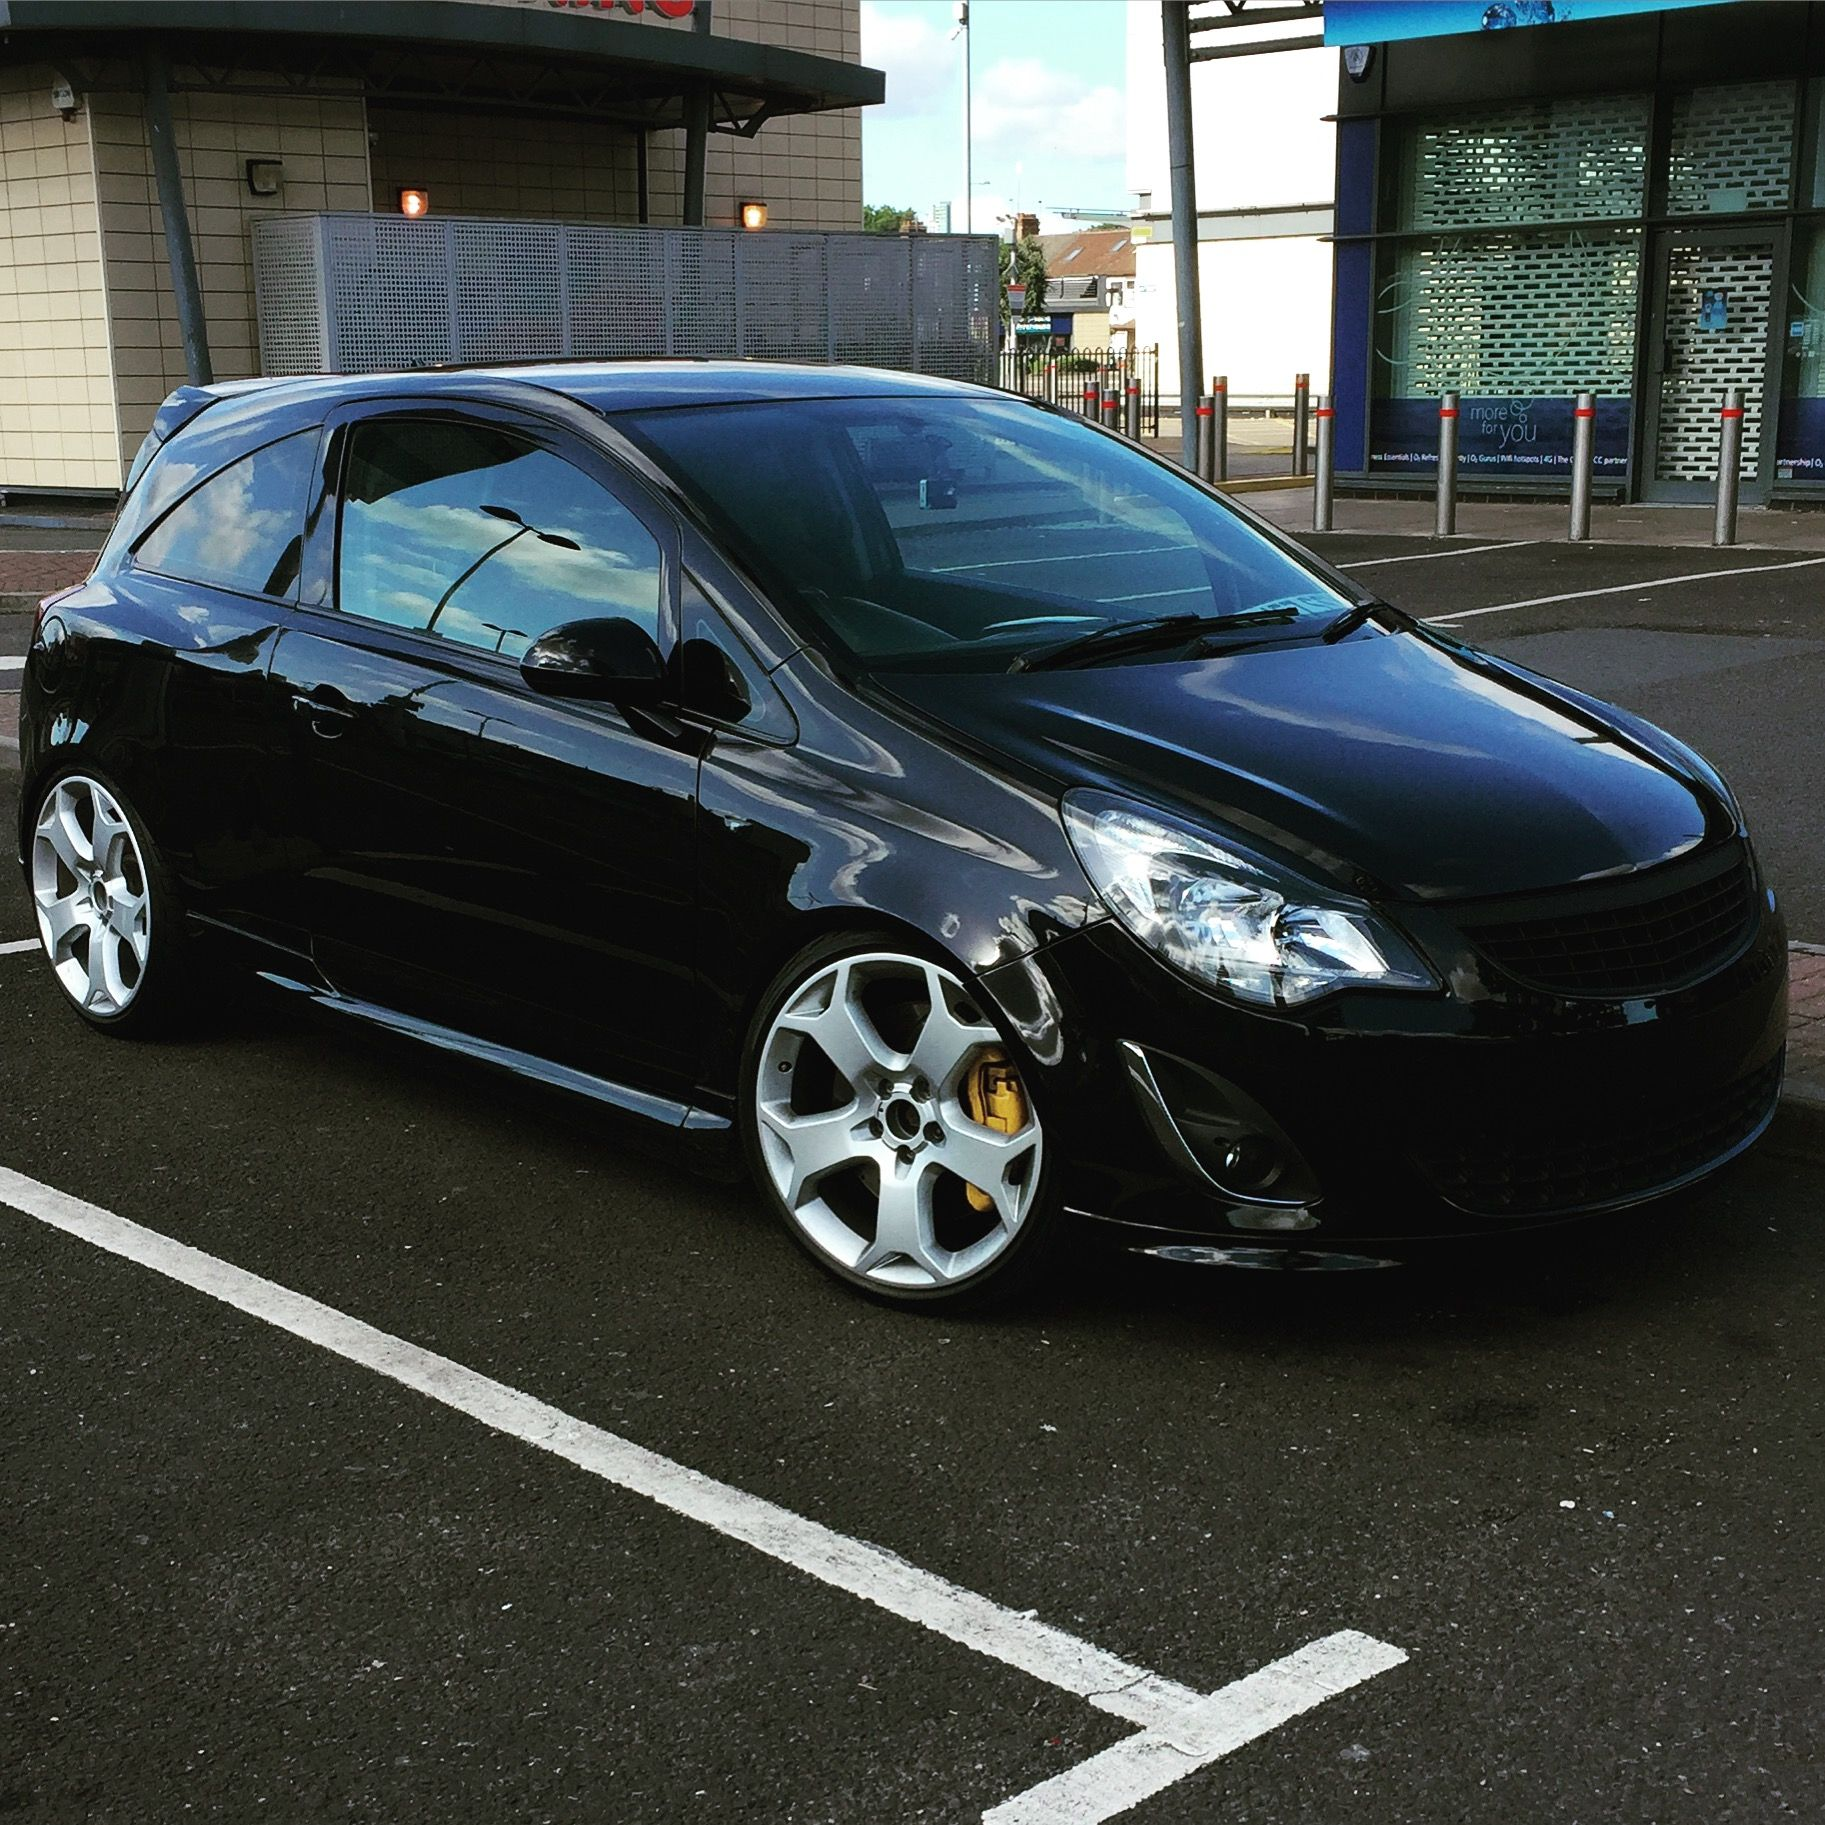 Pin By Ivan Hristov On My Modified Vauxhall Corsa Vauxhall Corsa Vauxhall Insignia Vauxhall